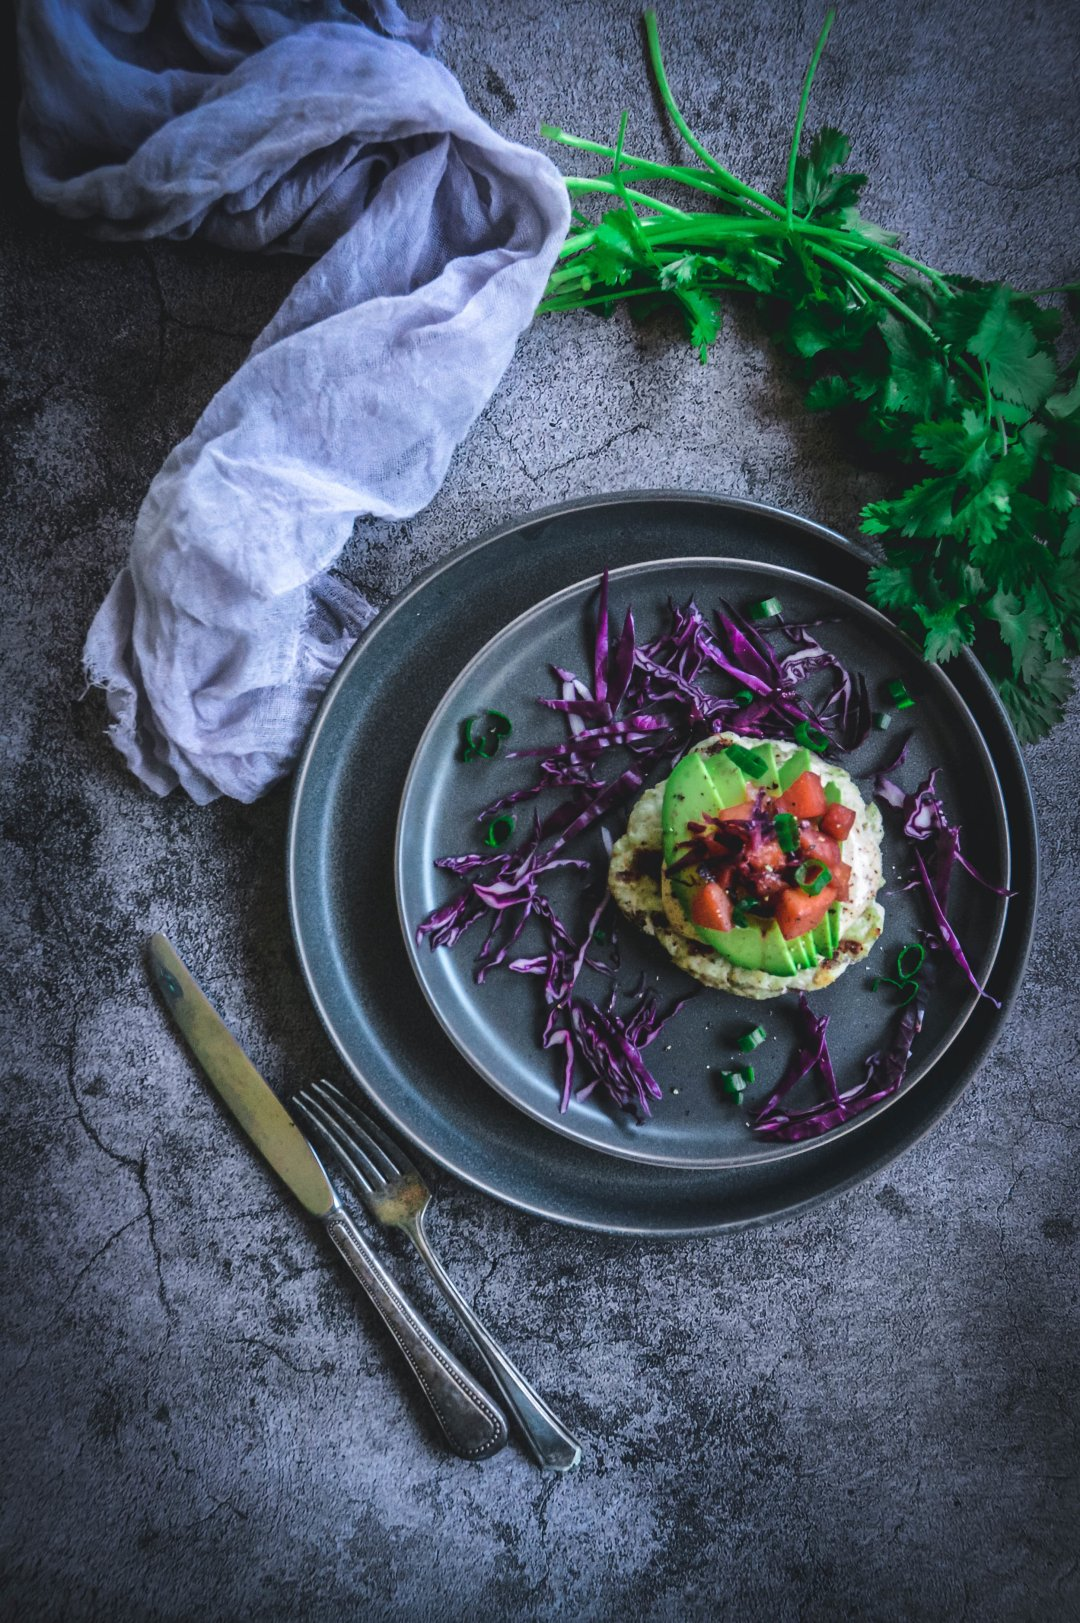 Turkey burgers on plate with fork and knife, cilantro and napkin